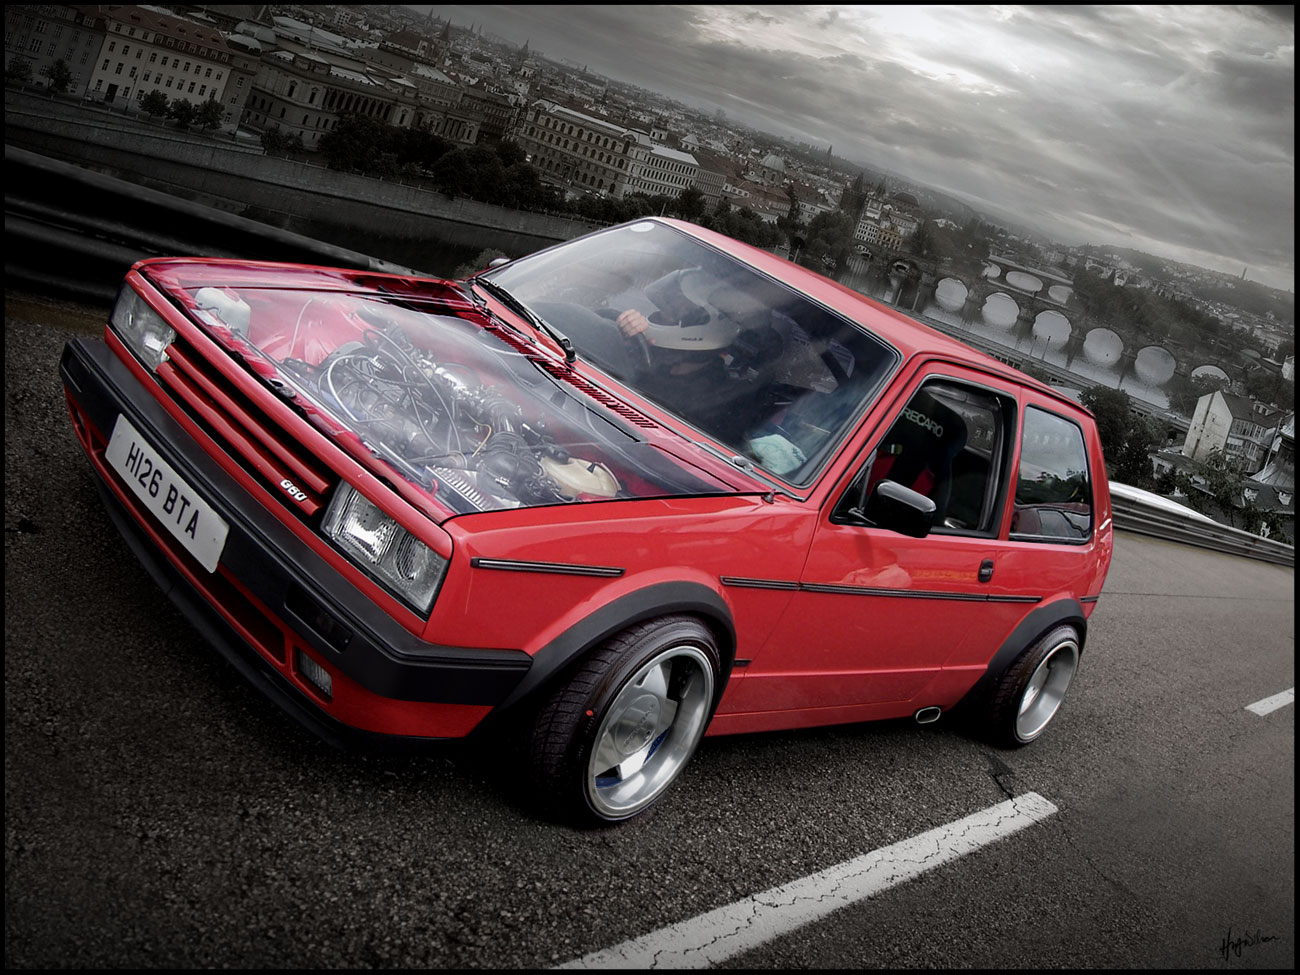 VW Golf 1 photo 18